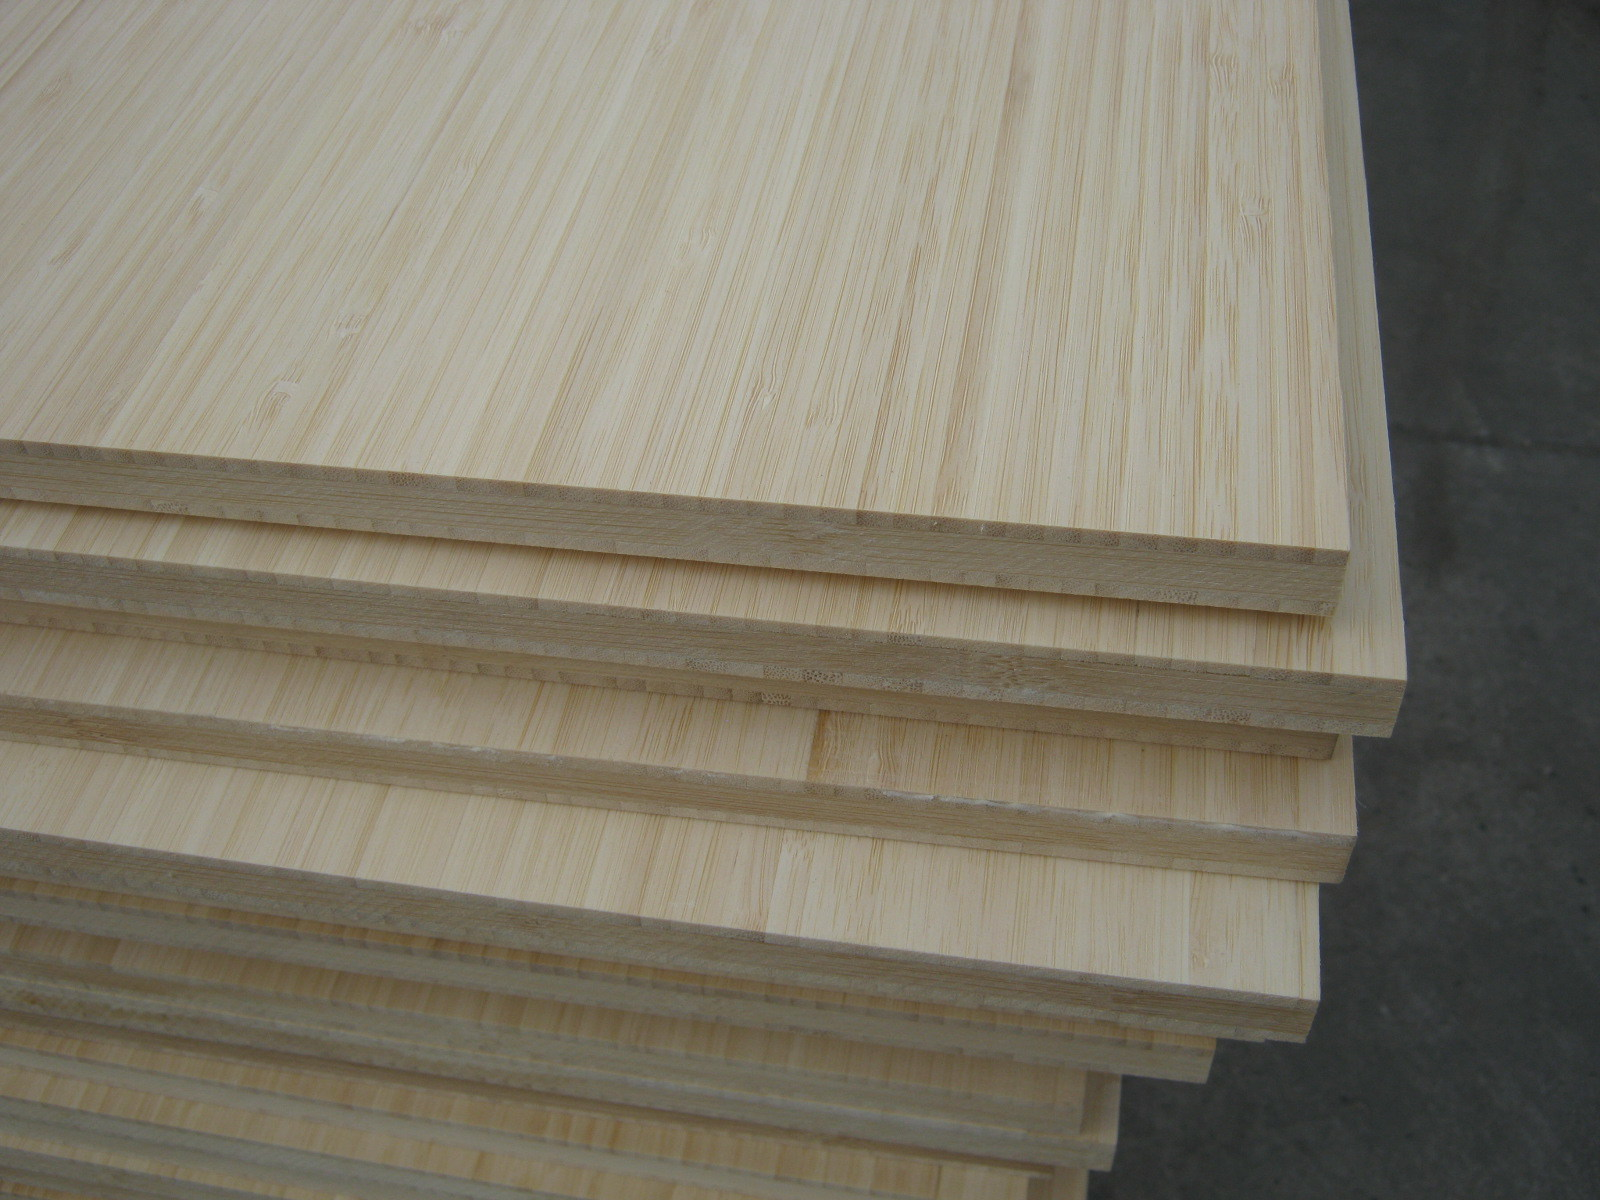 china bamboo boards, bamboo furniture boards - china bamboo board